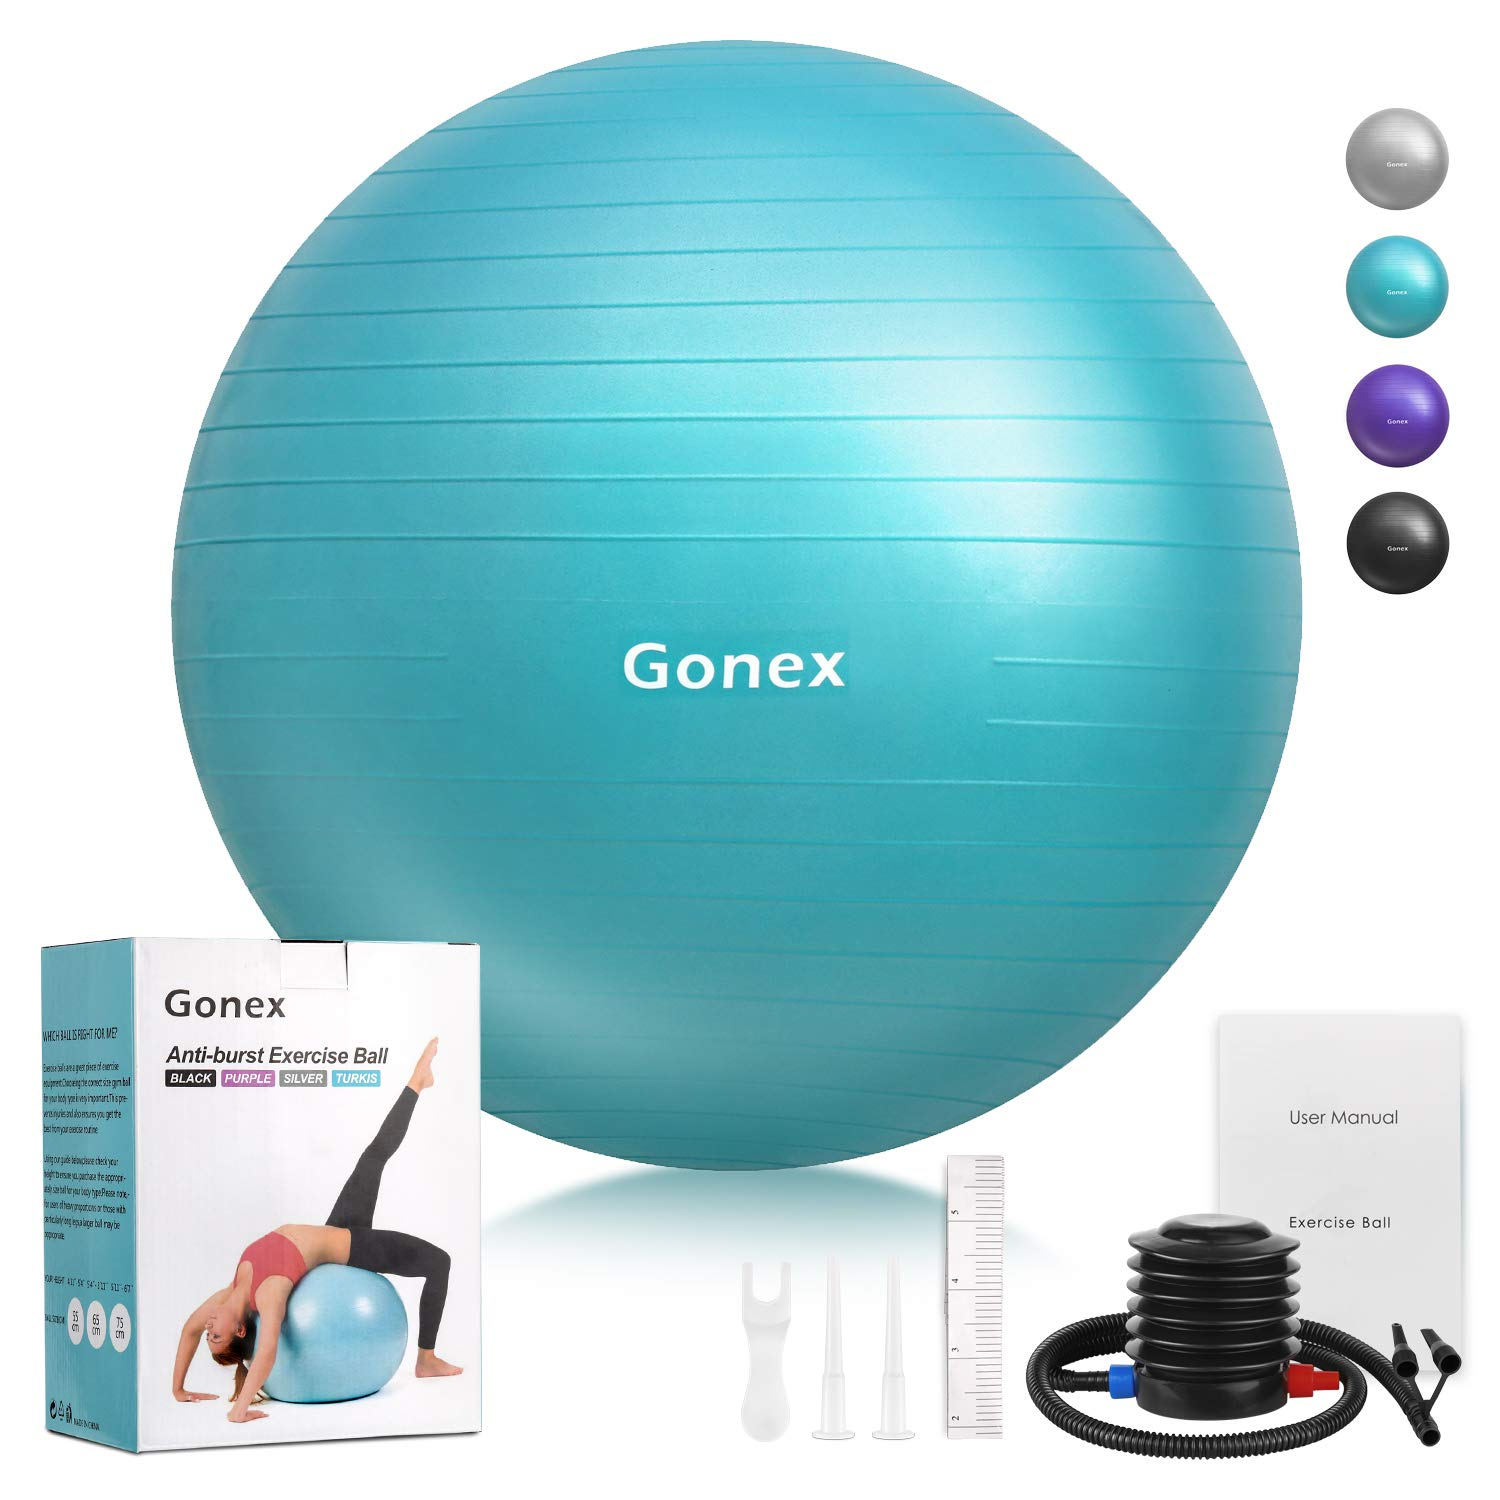 Gonex Exercise Workout Ball, 55 65 75 cm Anti-Burst Non-Slip Stability Balance Ball for Birthing, Yoga, Pilates, Desk Chairs, Fitness, Quick Pump Workout Guide Included